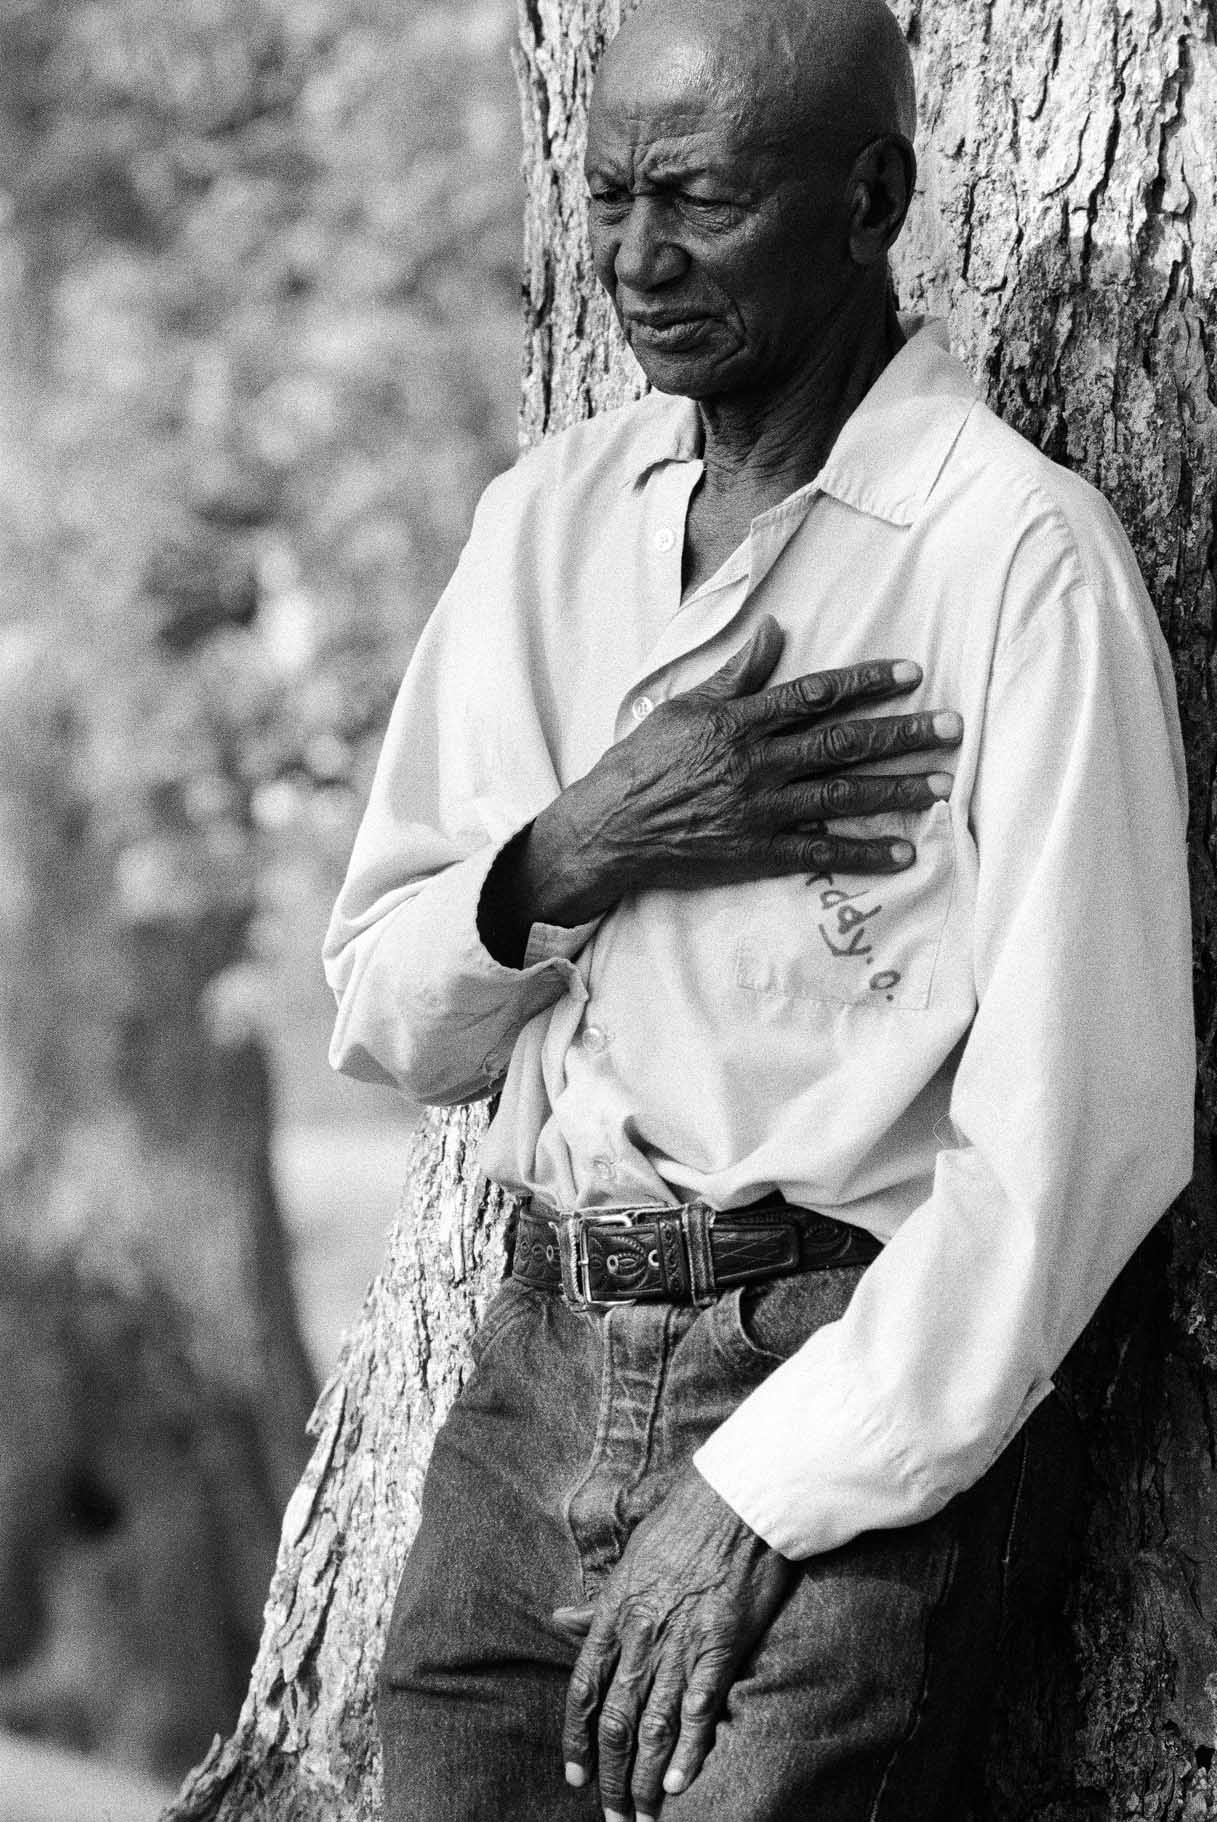 Chandra McCormick. DADDY'O, THE OLDEST INMATE IN ANGOLA STATE PENITENTIARY, 2004.